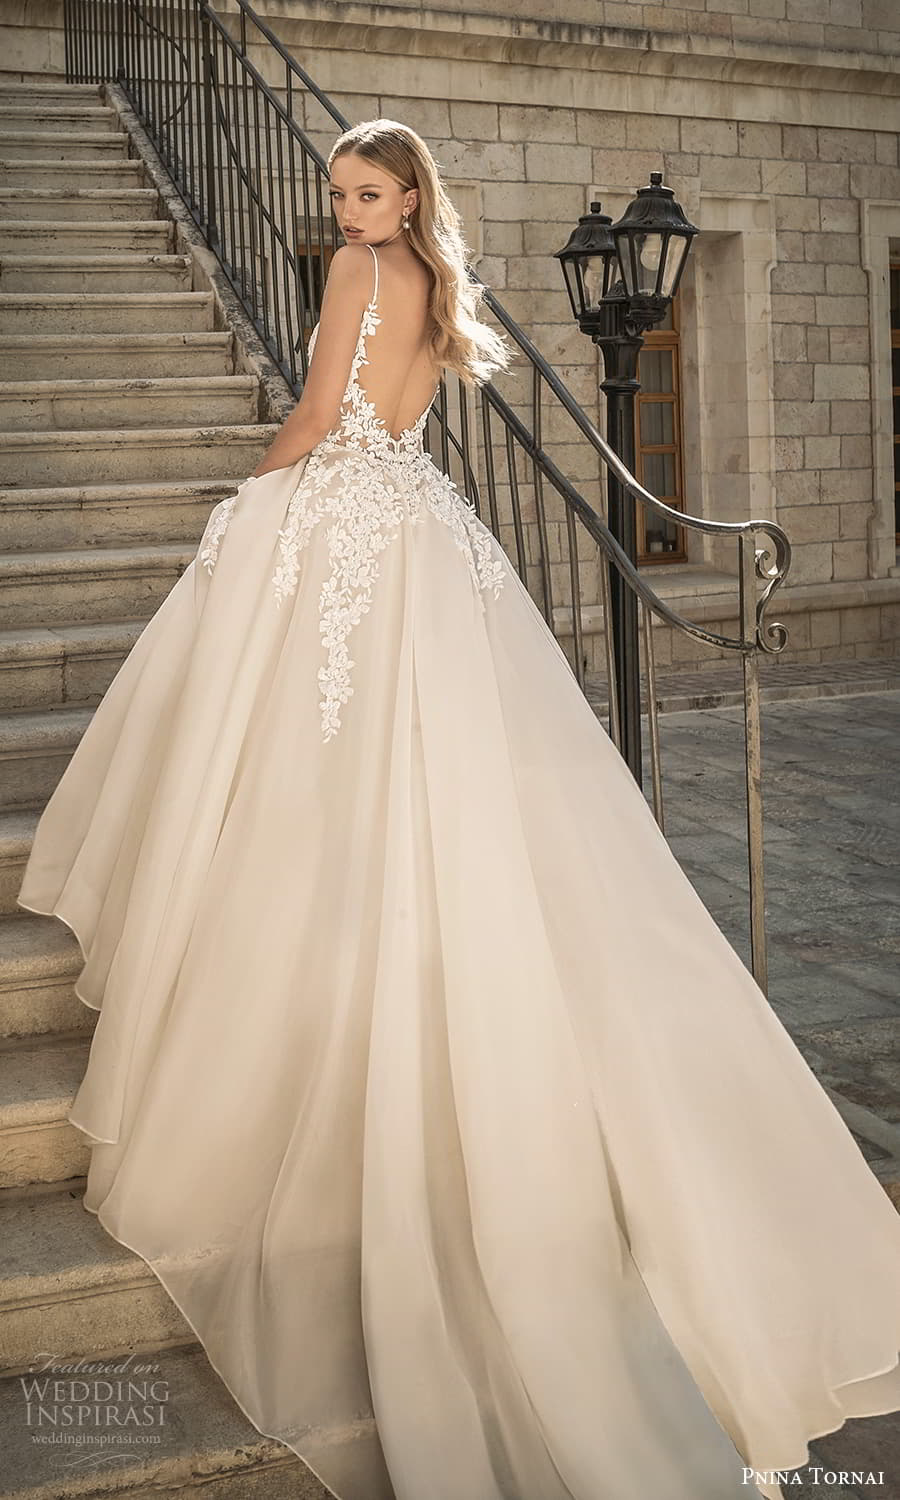 pnina tornai 2022 love bridal sleeveless straps plunging sweetheart neckline embellished bodice a line ball gown wedding dress chapel train (9) bv